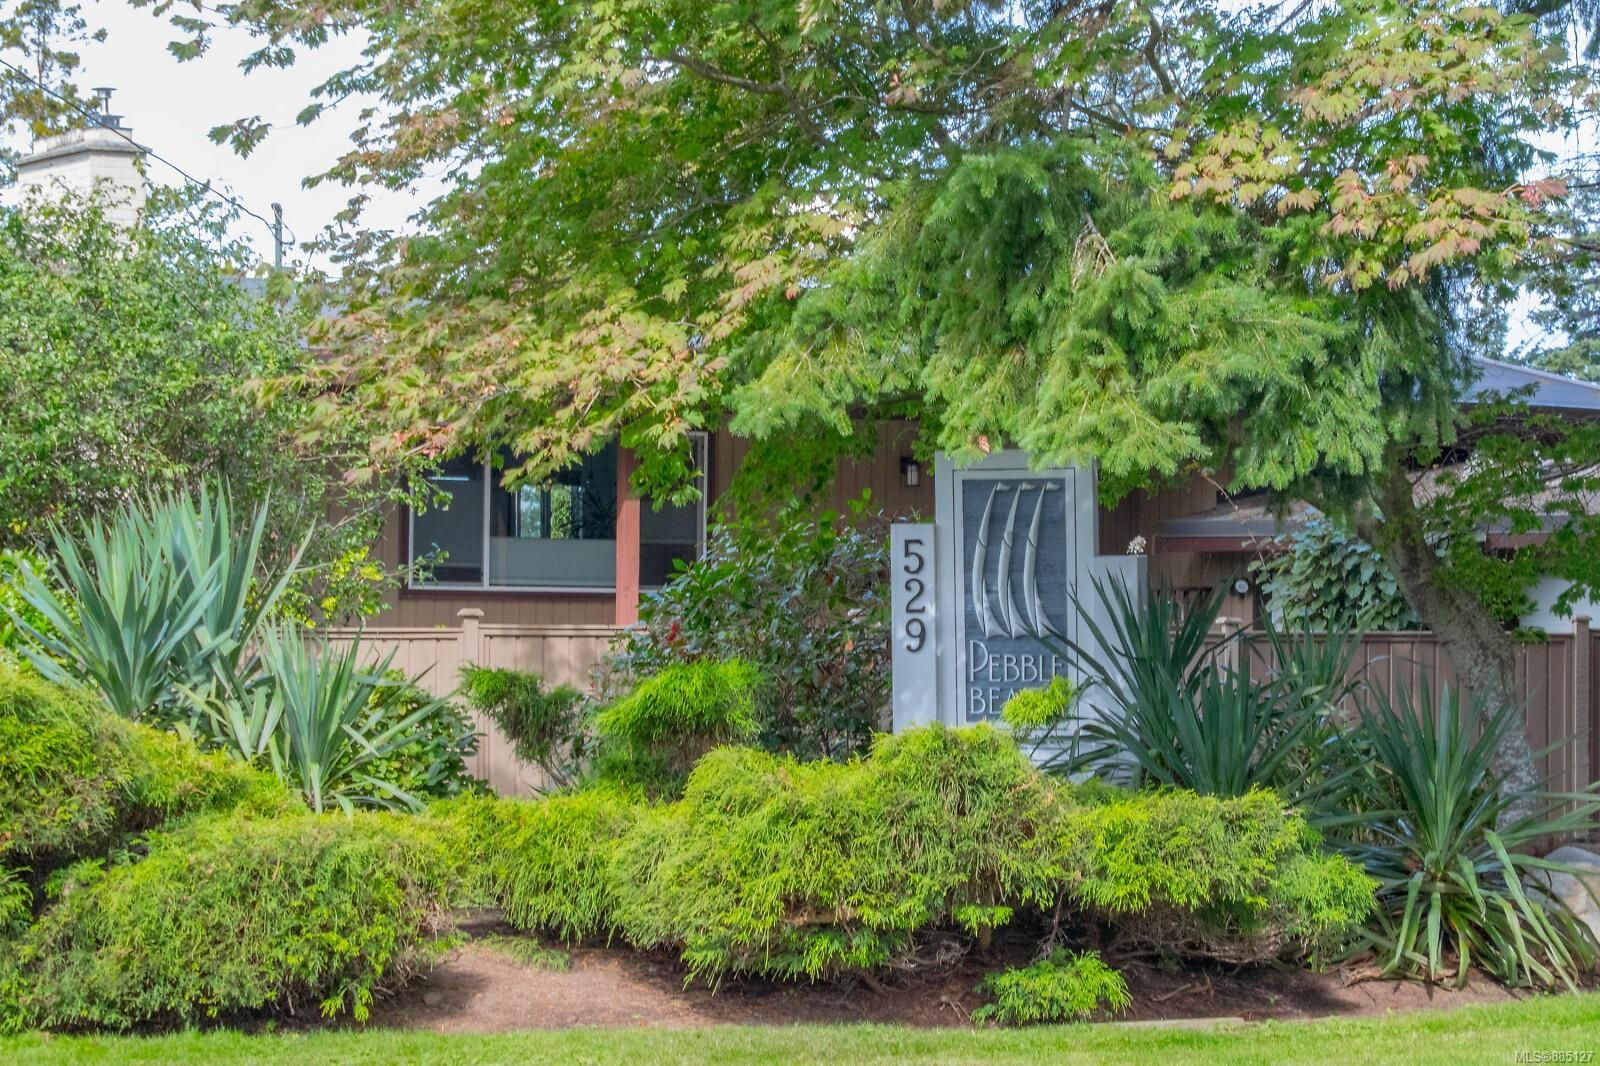 Photo 16: Photos: 26 529 Johnstone Rd in : PQ French Creek Row/Townhouse for sale (Parksville/Qualicum)  : MLS®# 885127